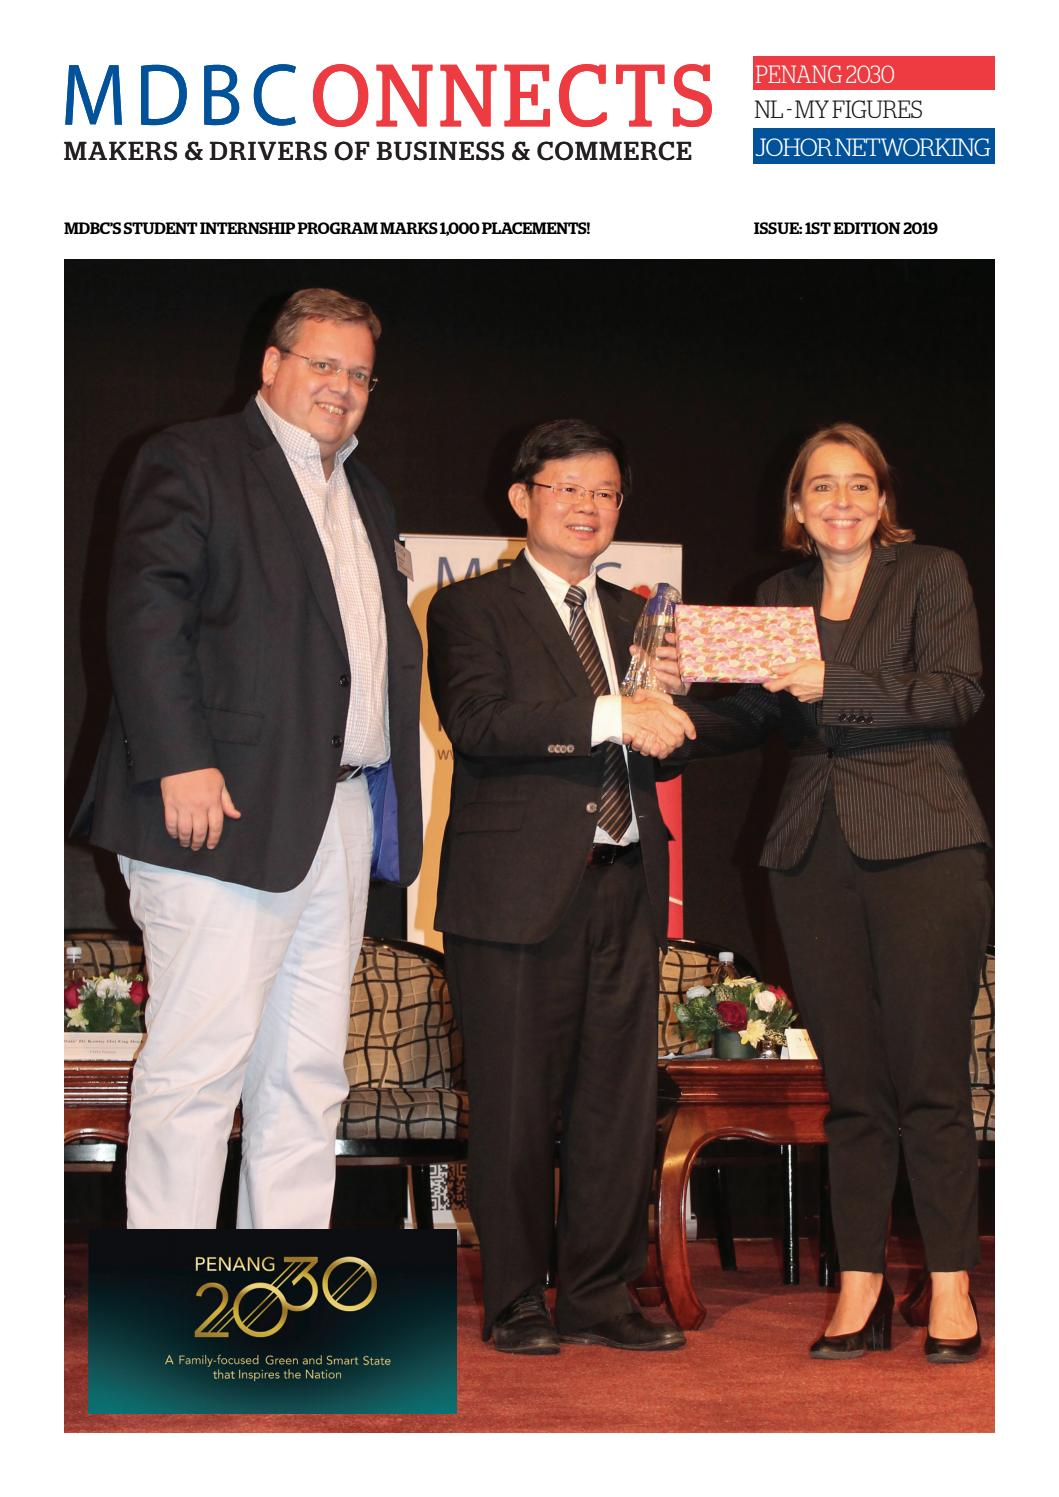 MDBCONNECTS 2019 - 1 by Malaysian Dutch Business Council - issuu